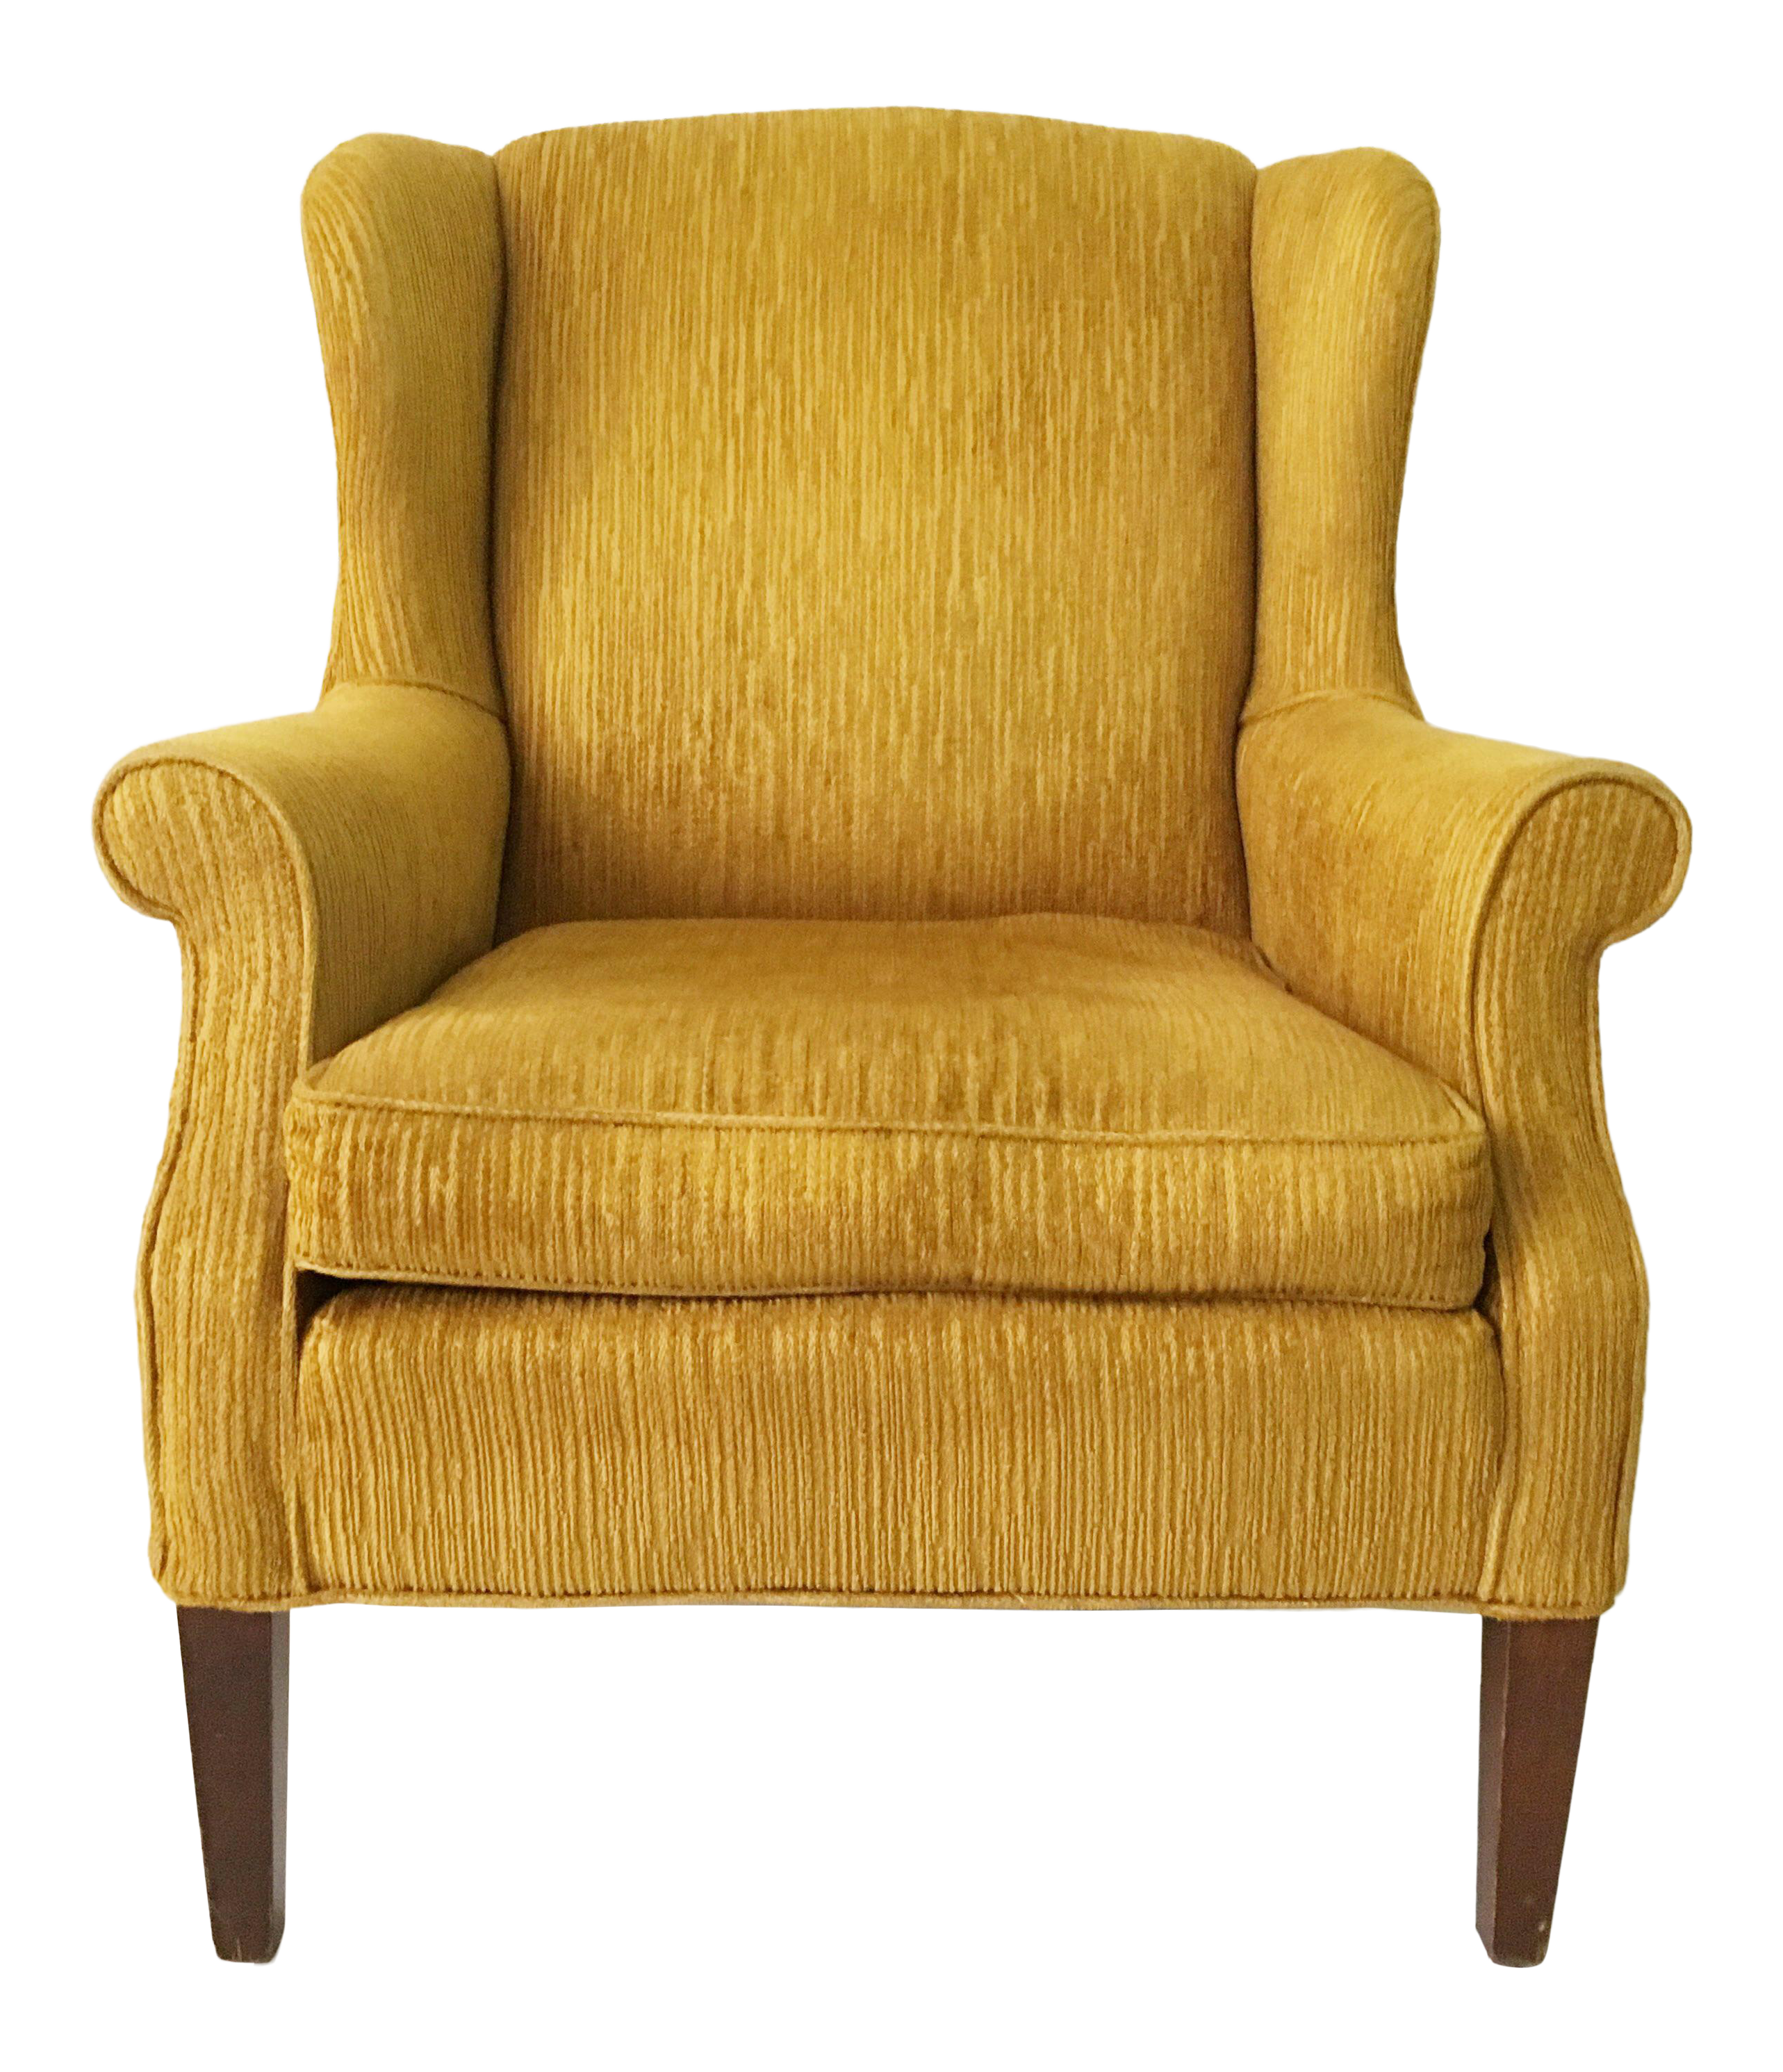 vintage-mid-century-harvest-gold-wingback-chair-1640.png